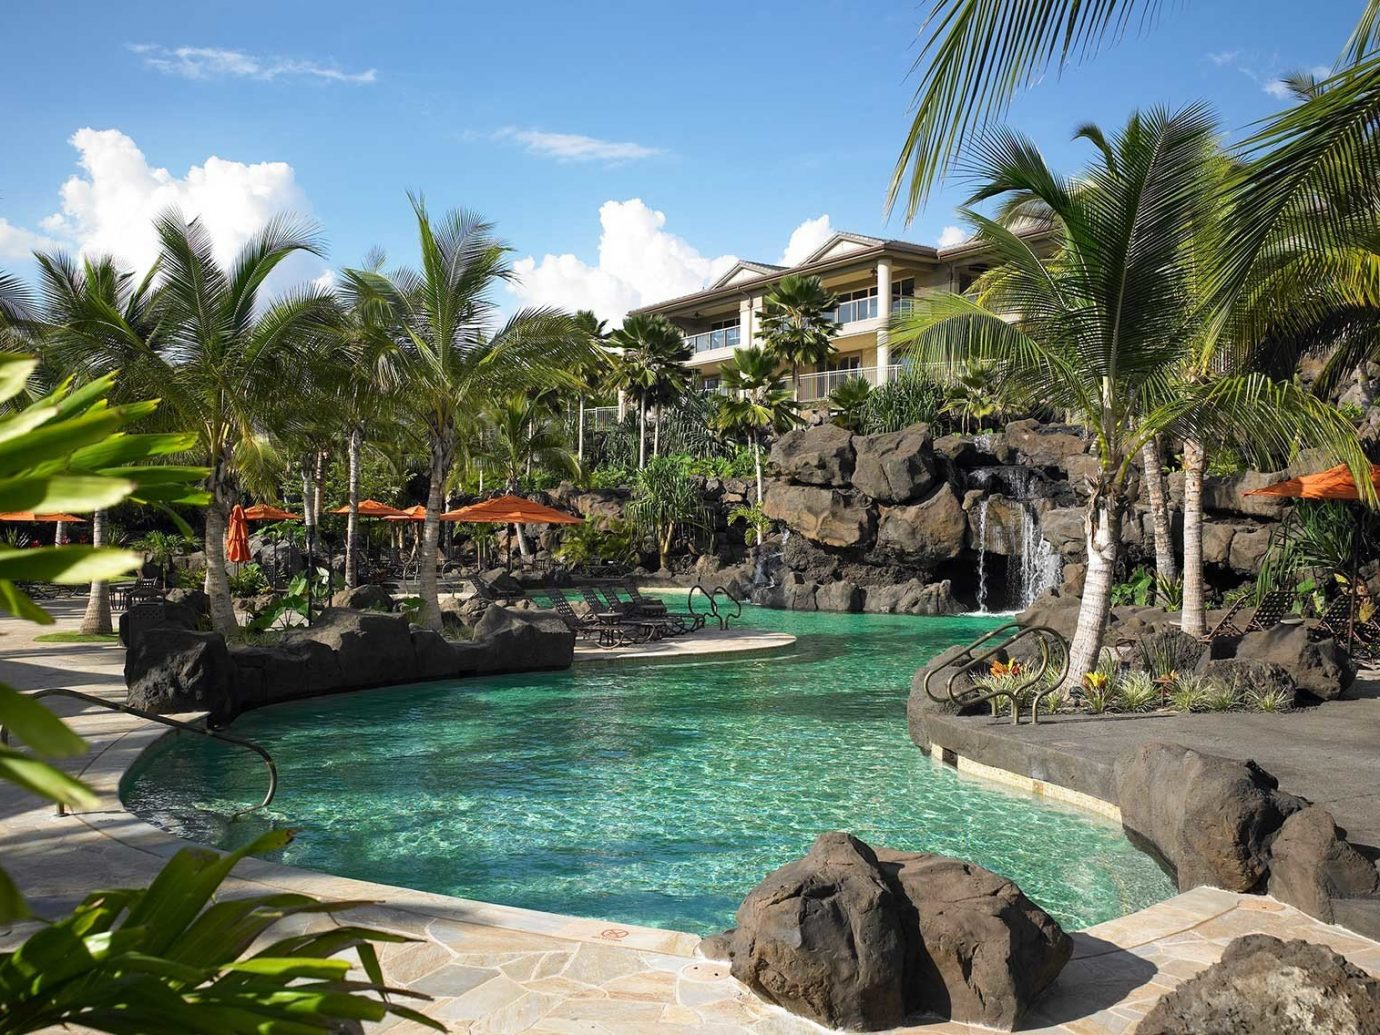 Beach Boutique Hotels Hotels Luxury Travel Trip Ideas tree outdoor Resort swimming pool vegetation arecales water palm tree tropics leisure plant Nature vacation real estate tourism resort town sky estate Lagoon landscape recreation palm shore